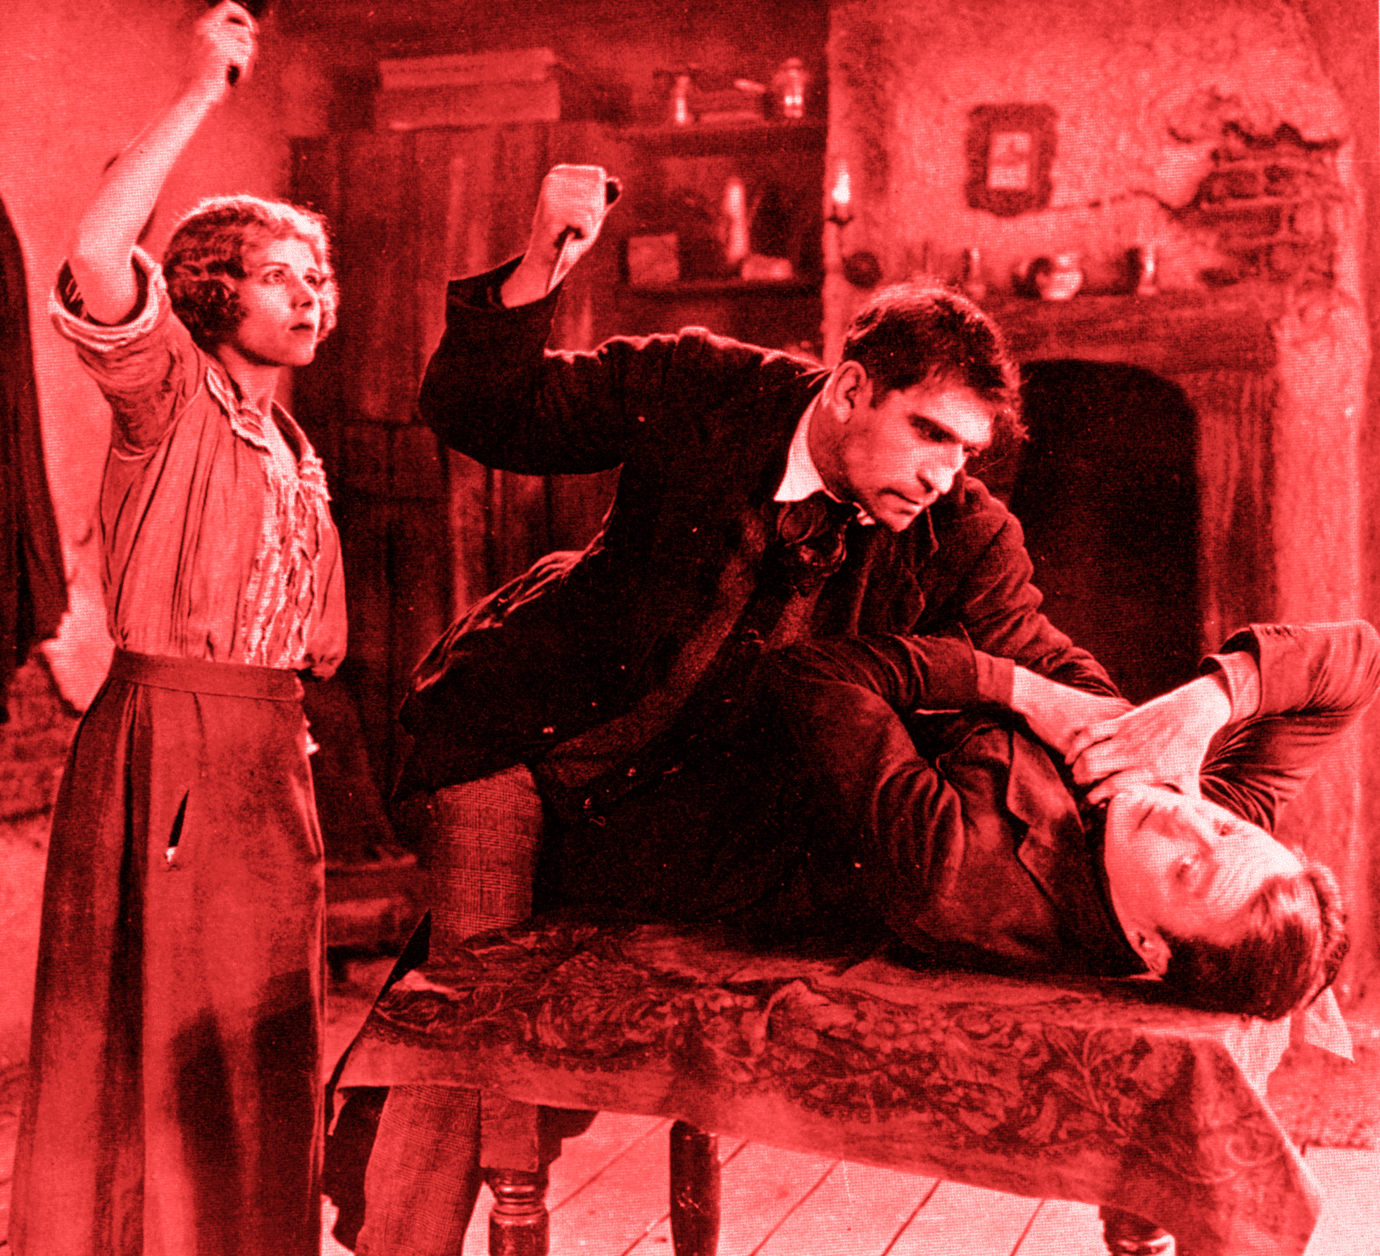 L-R Marjorie Daw, Victor McLaglen and Clive Brook in The Passionate Adventure (1924, asst dir. Alfred Hitchcock)